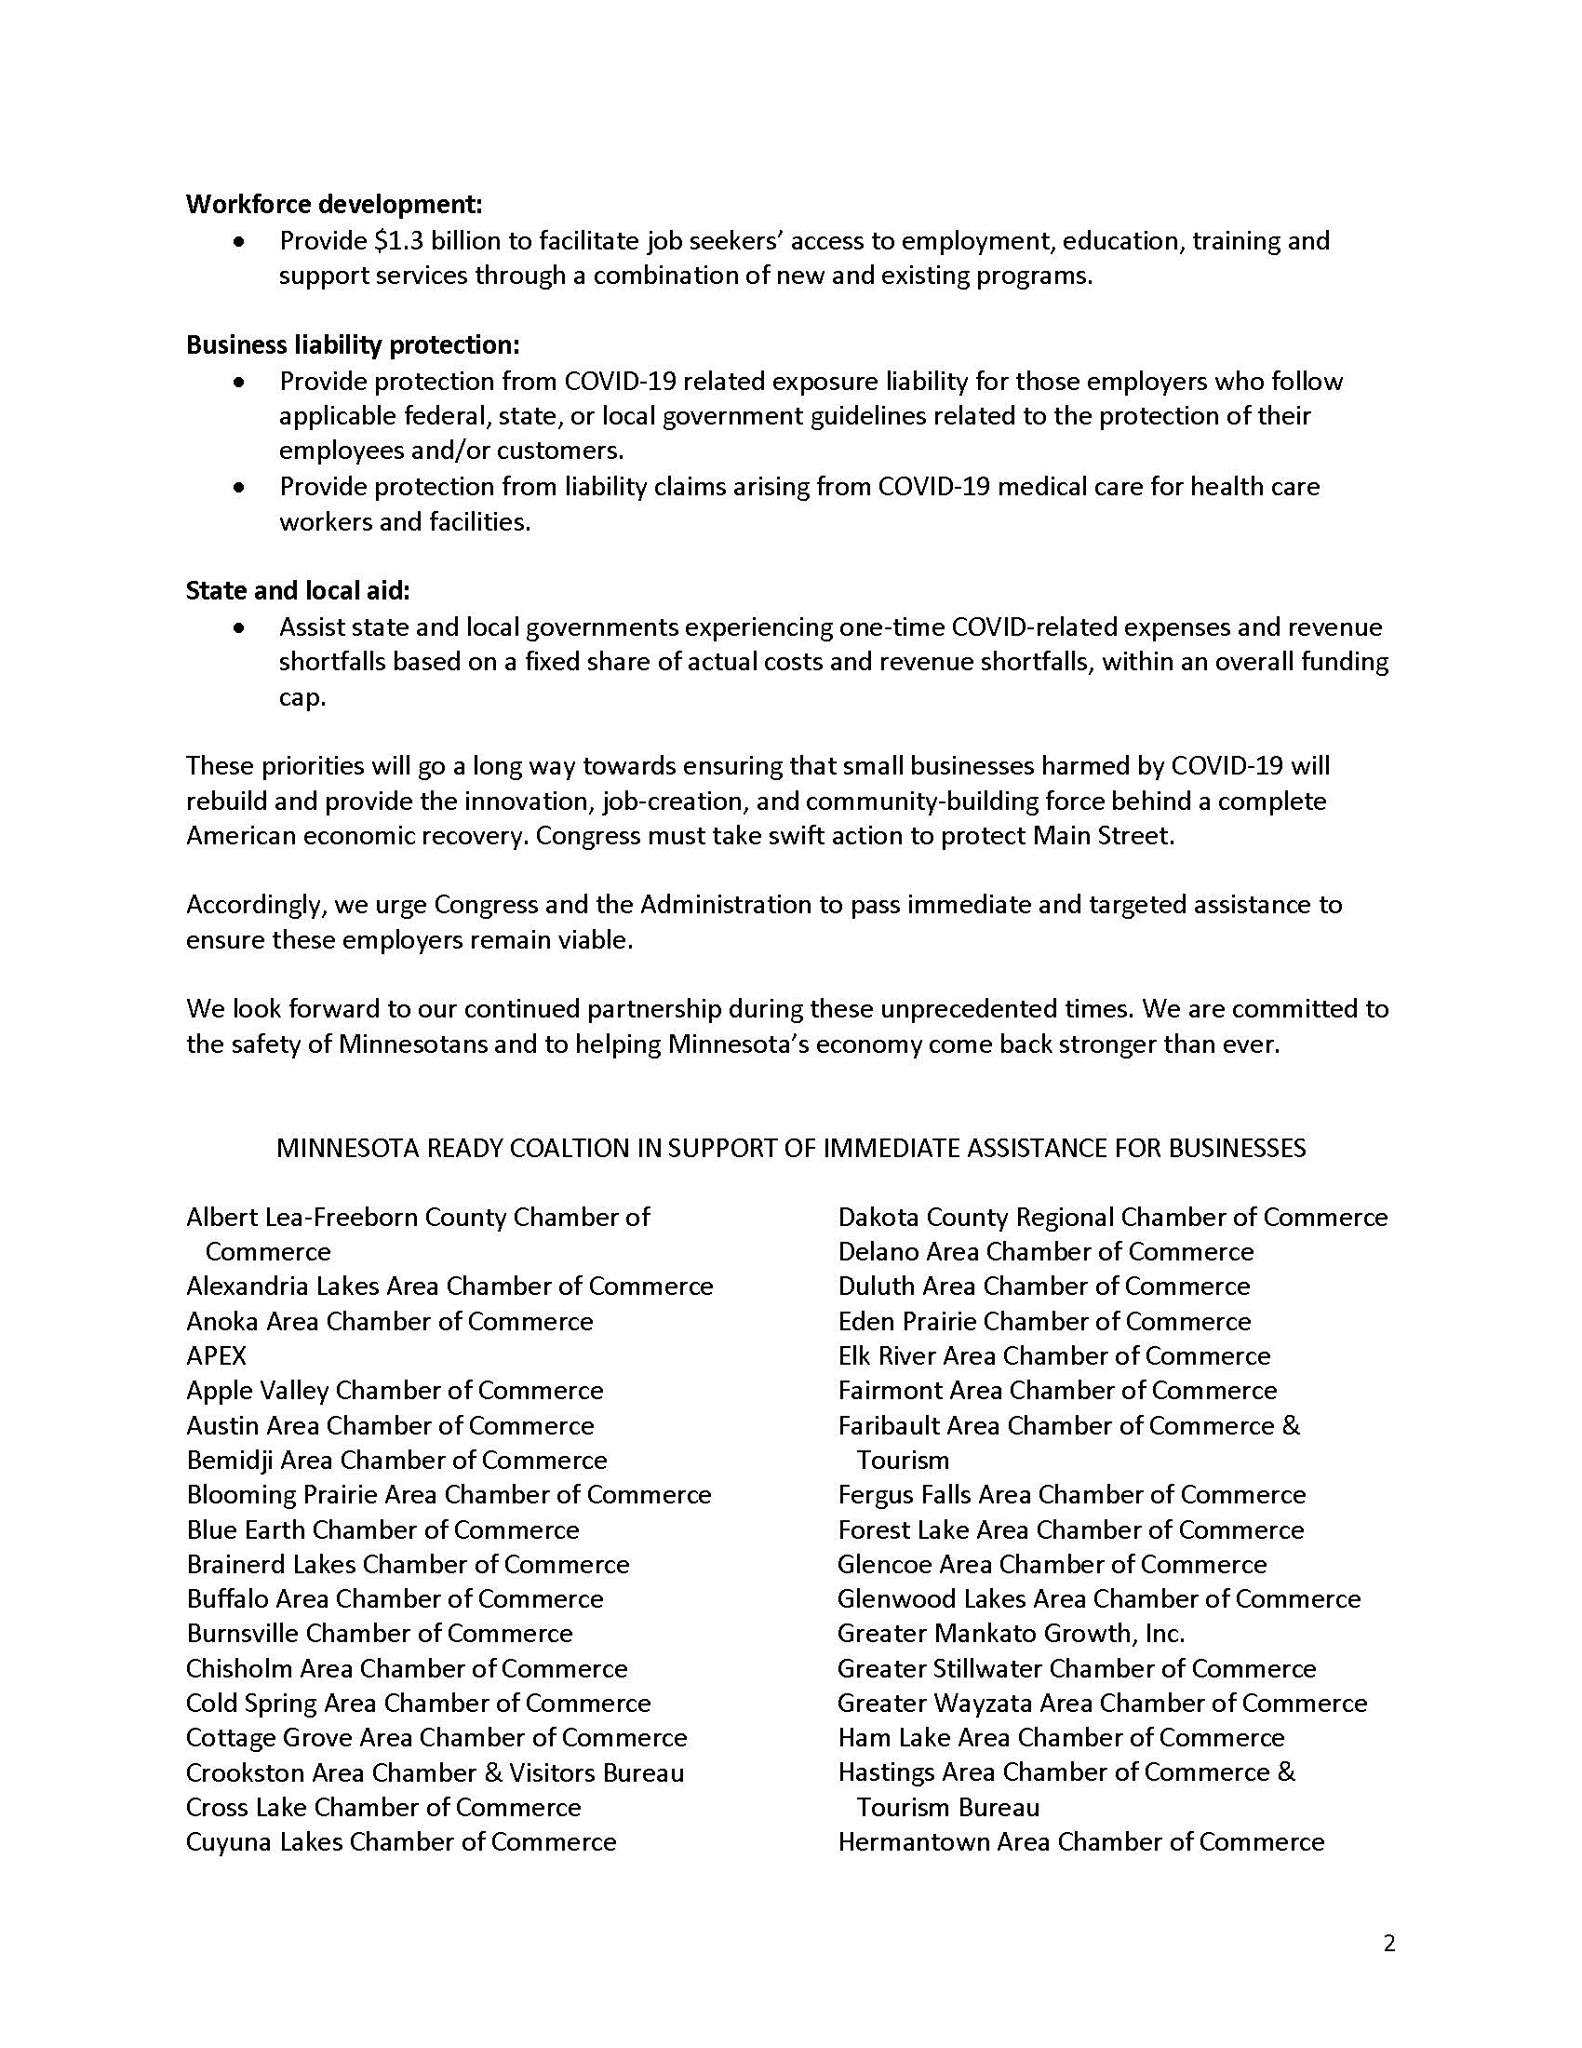 MN READY COALITION PAGE 2